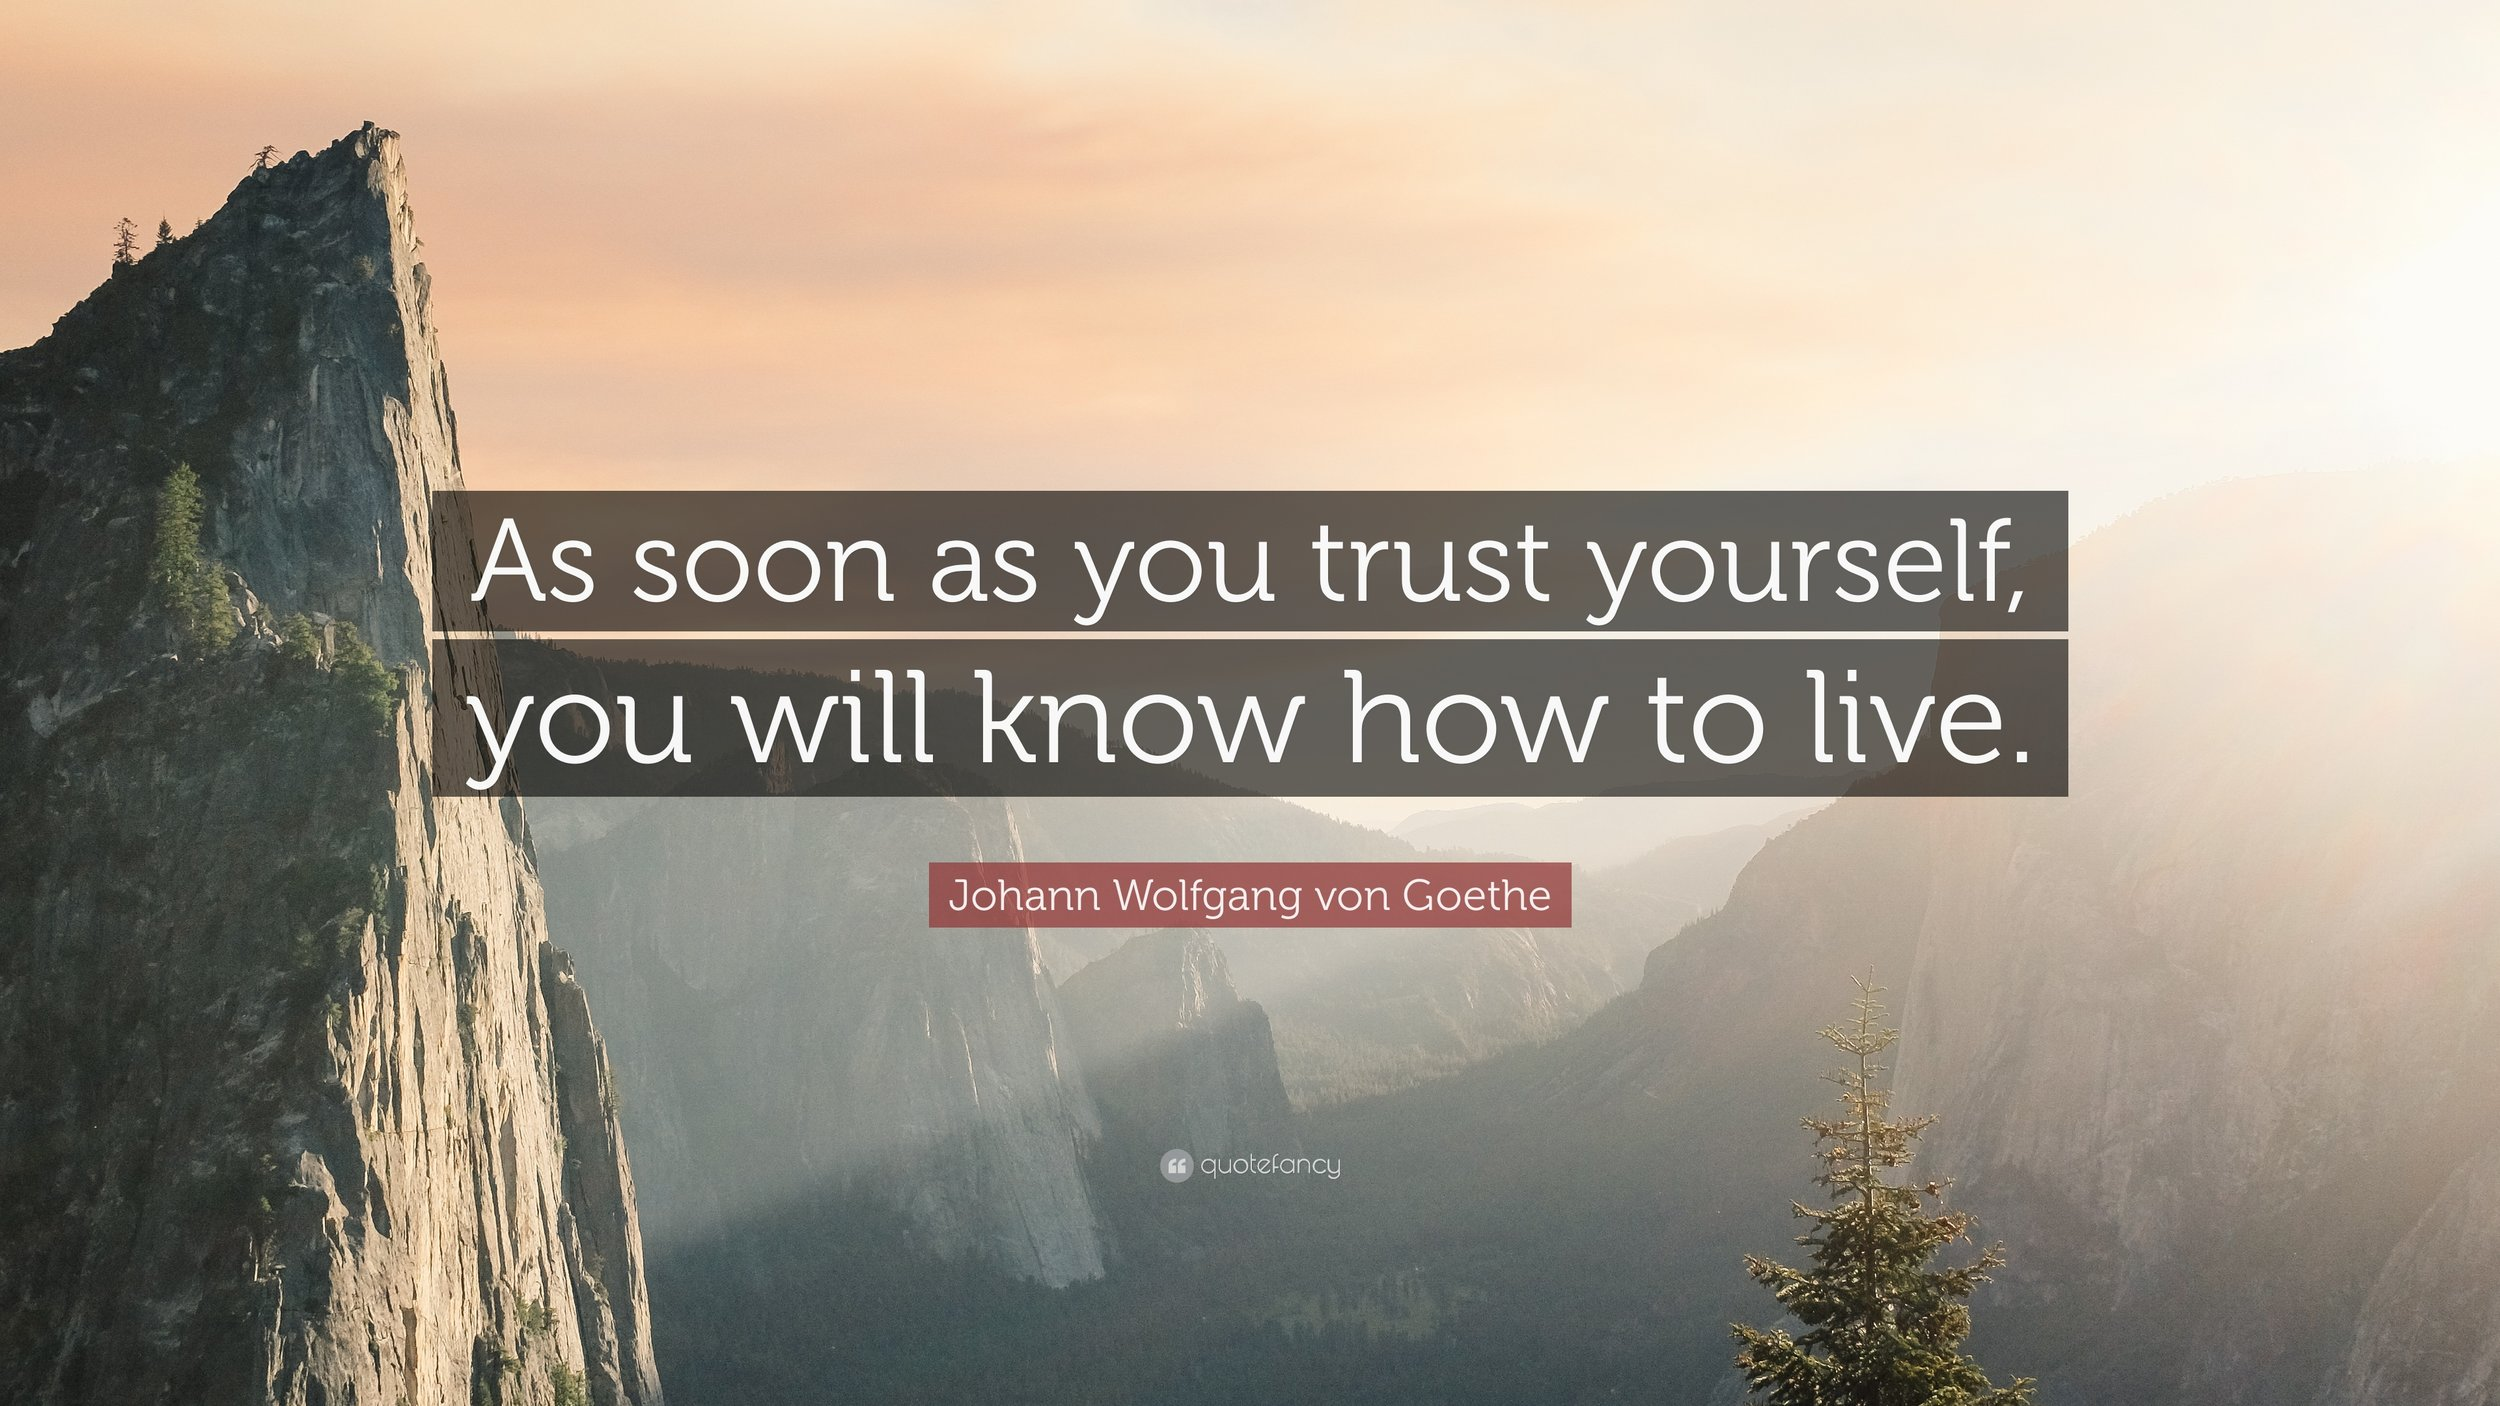 43568-Johann-Wolfgang-von-Goethe-Quote-As-soon-as-you-trust-yourself-you.jpg